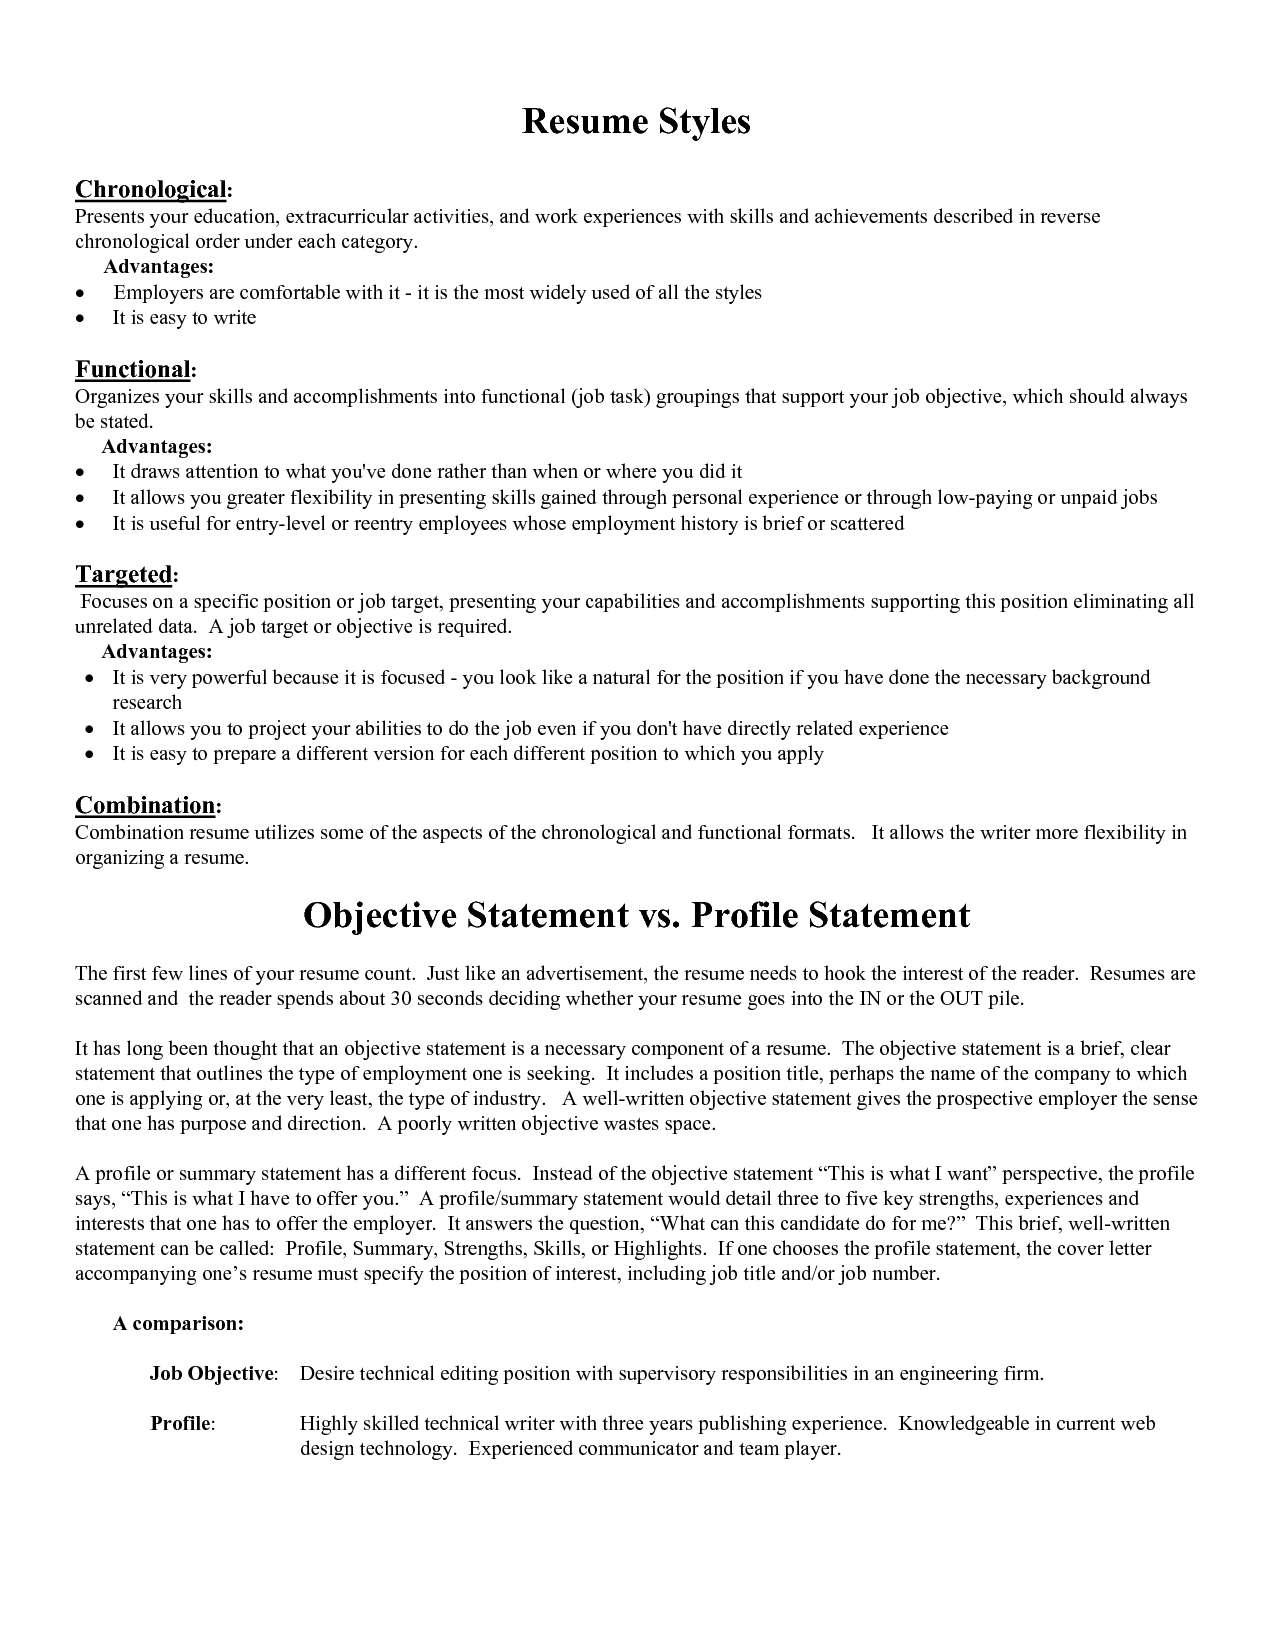 job search tolls objectives statements to be customized and insurance customer service resume sample